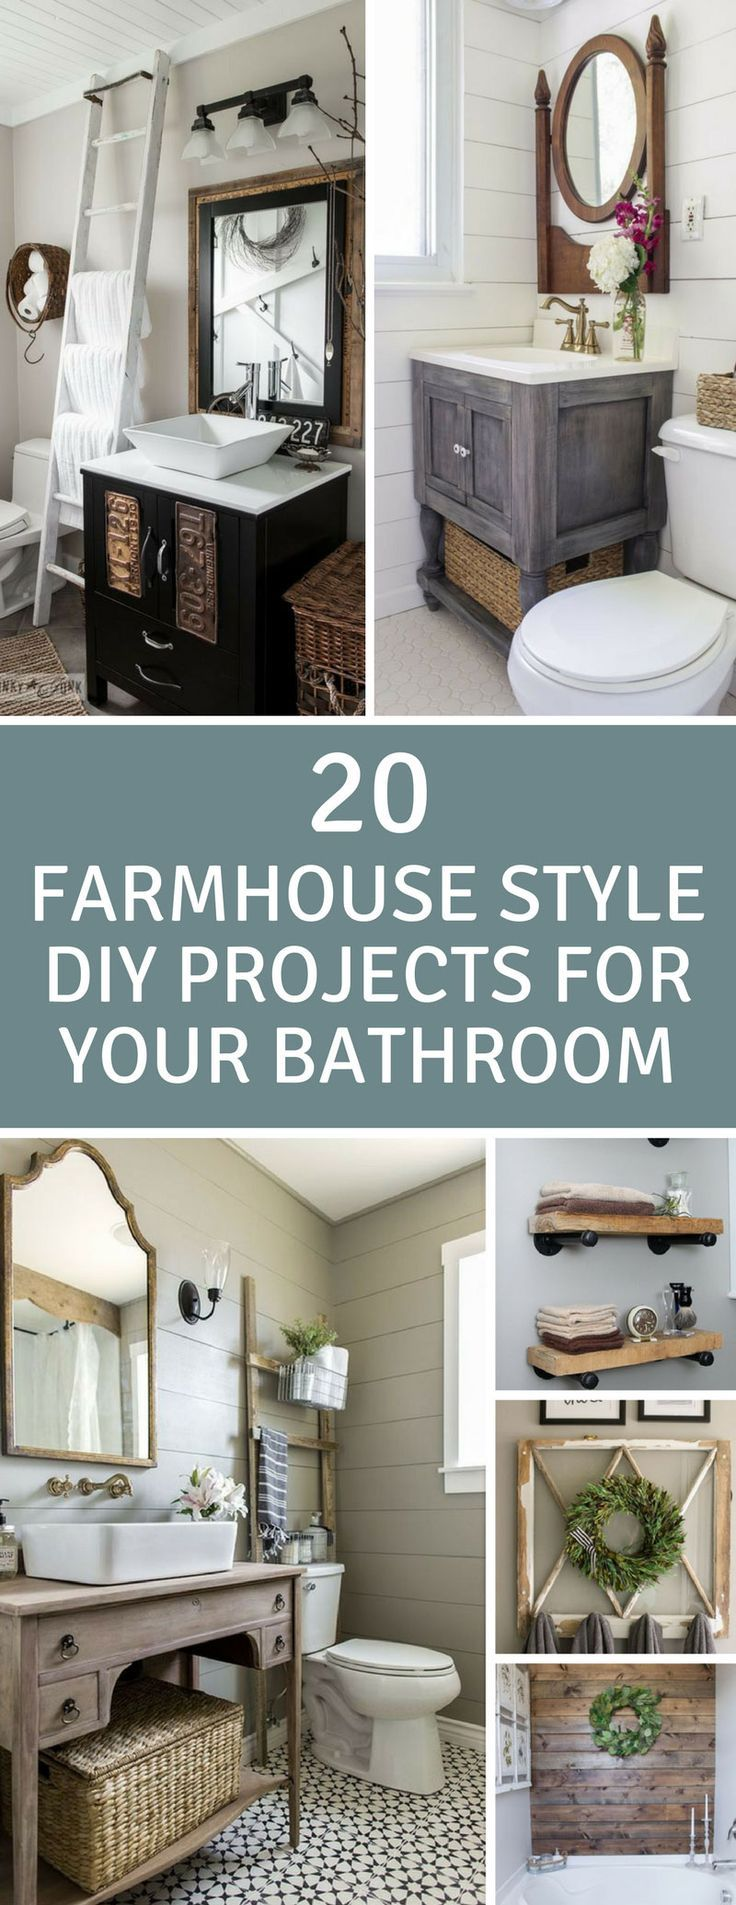 Farmhouse DIY Projects for the Bathroom - Loving these Fixer Upper DIY projects to makeover my bathroom on a budget!